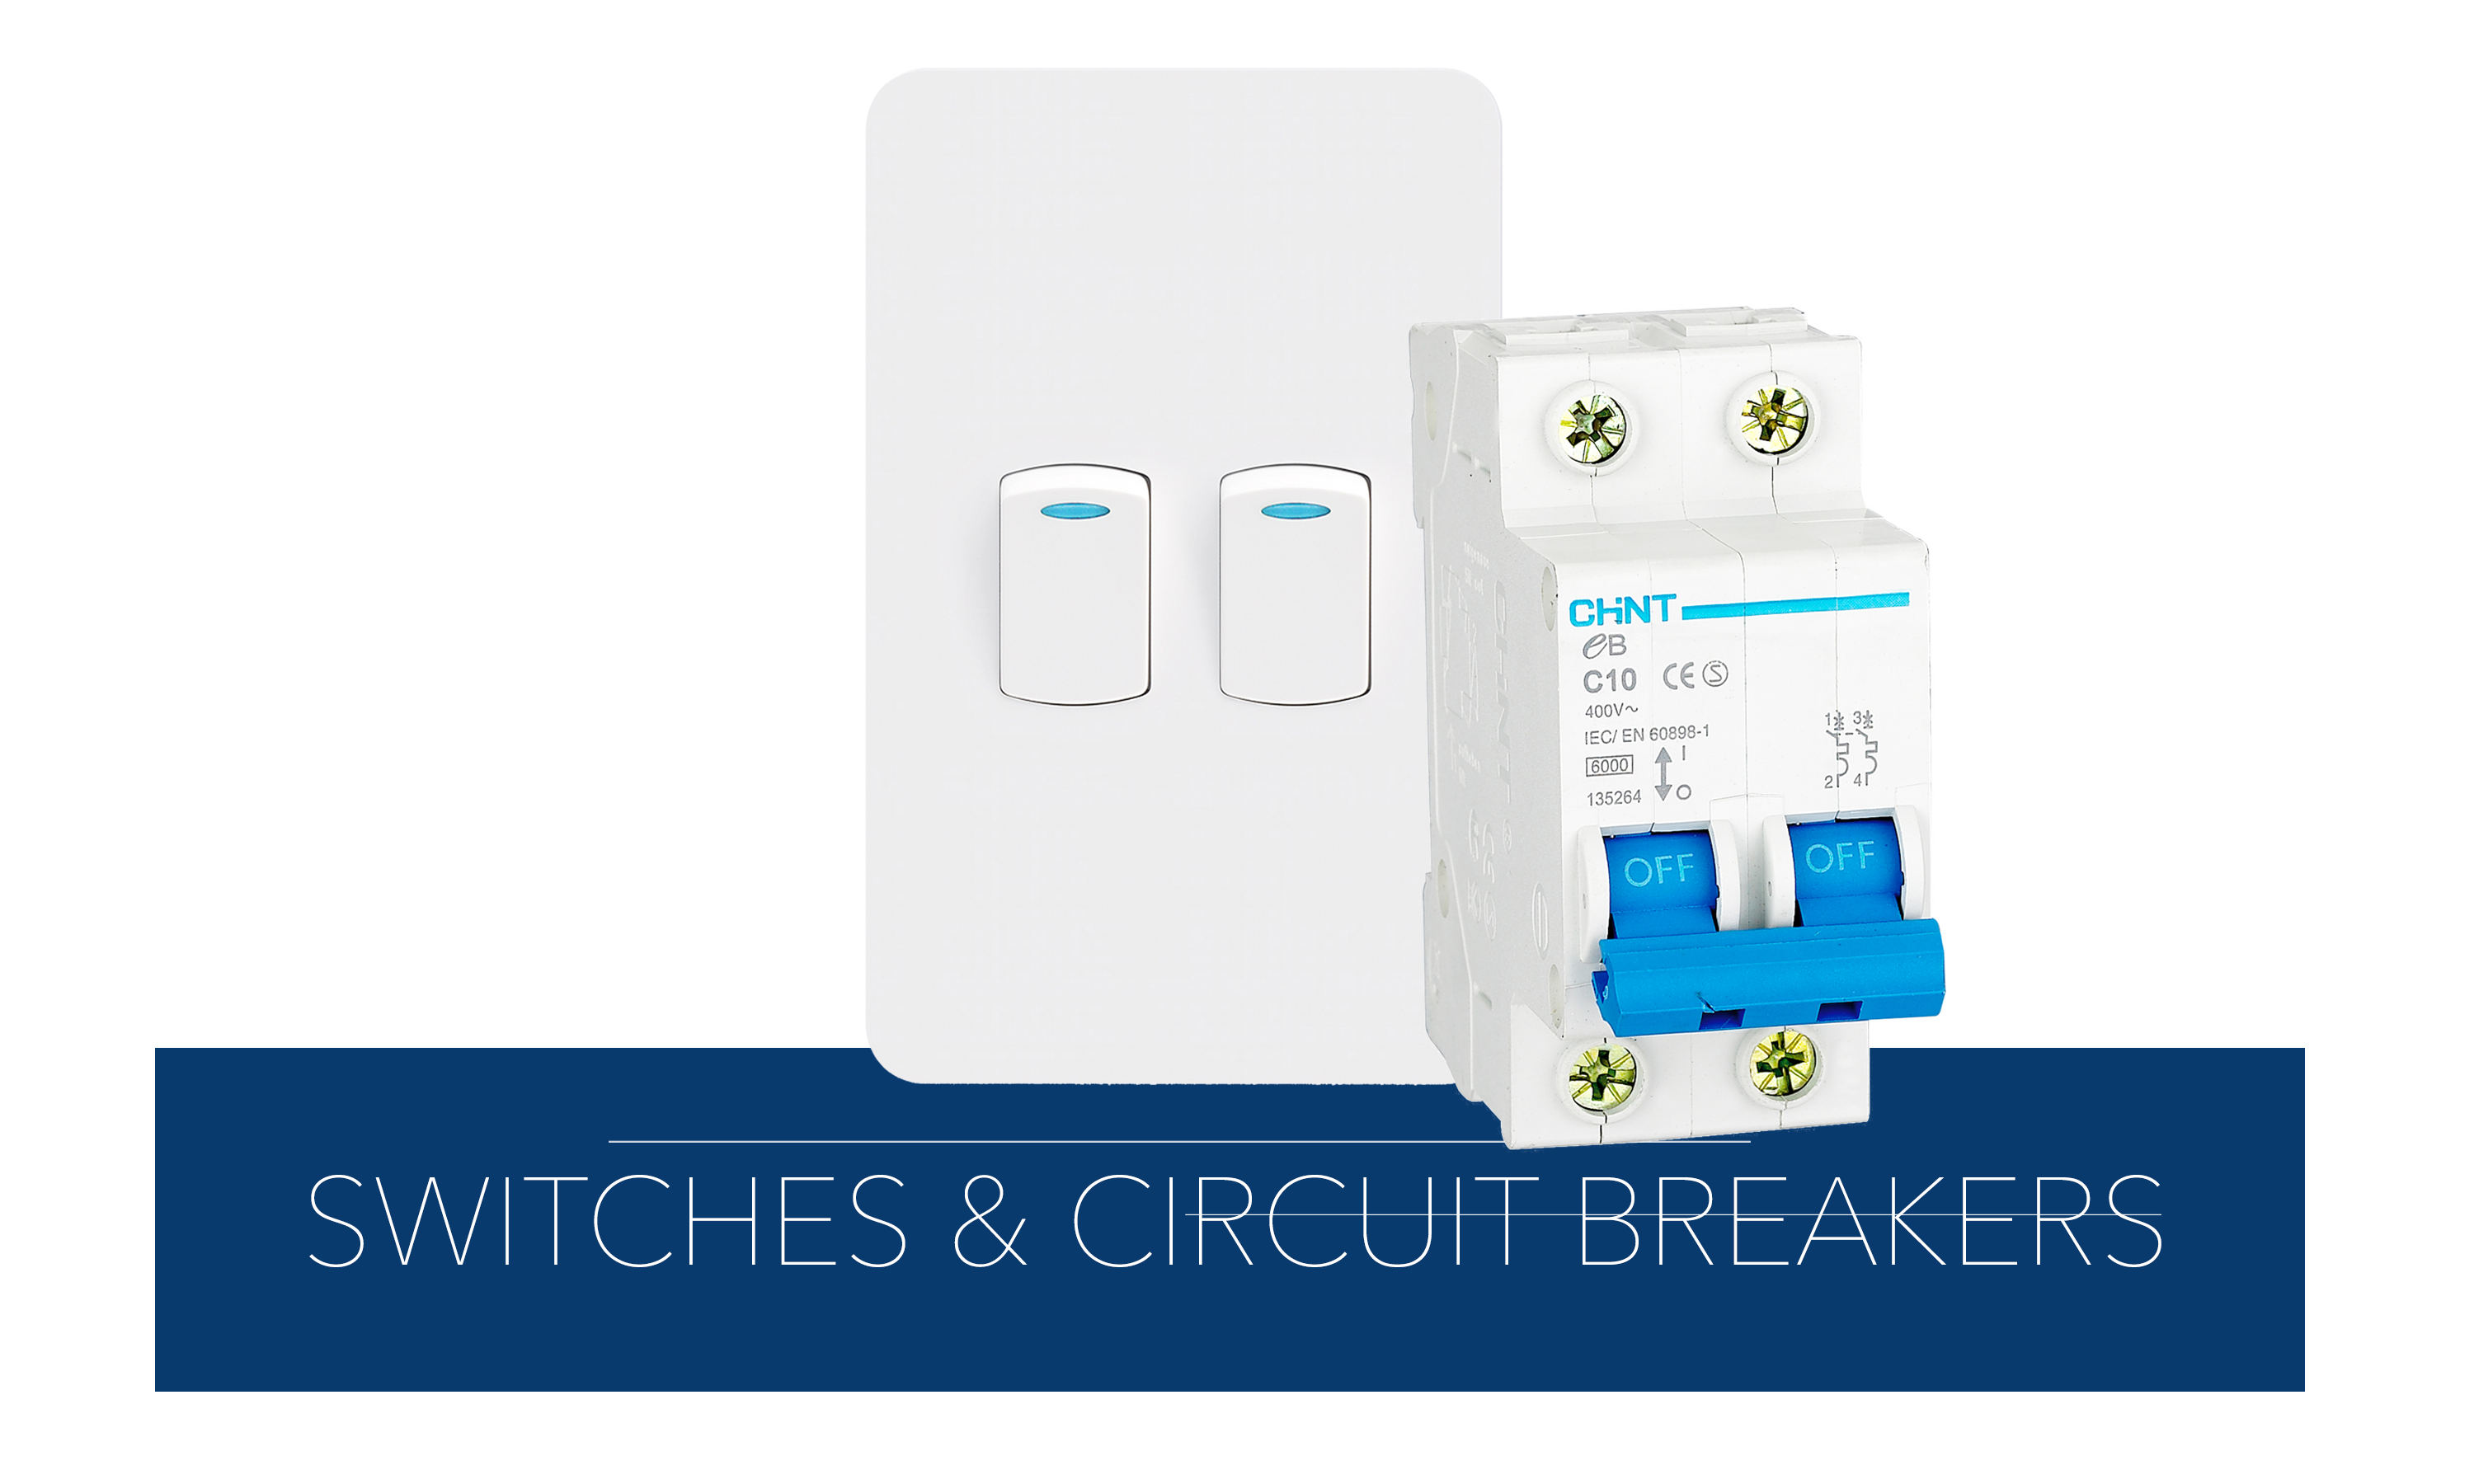 (SWITCH CIRCUIT BREAKERS) Button